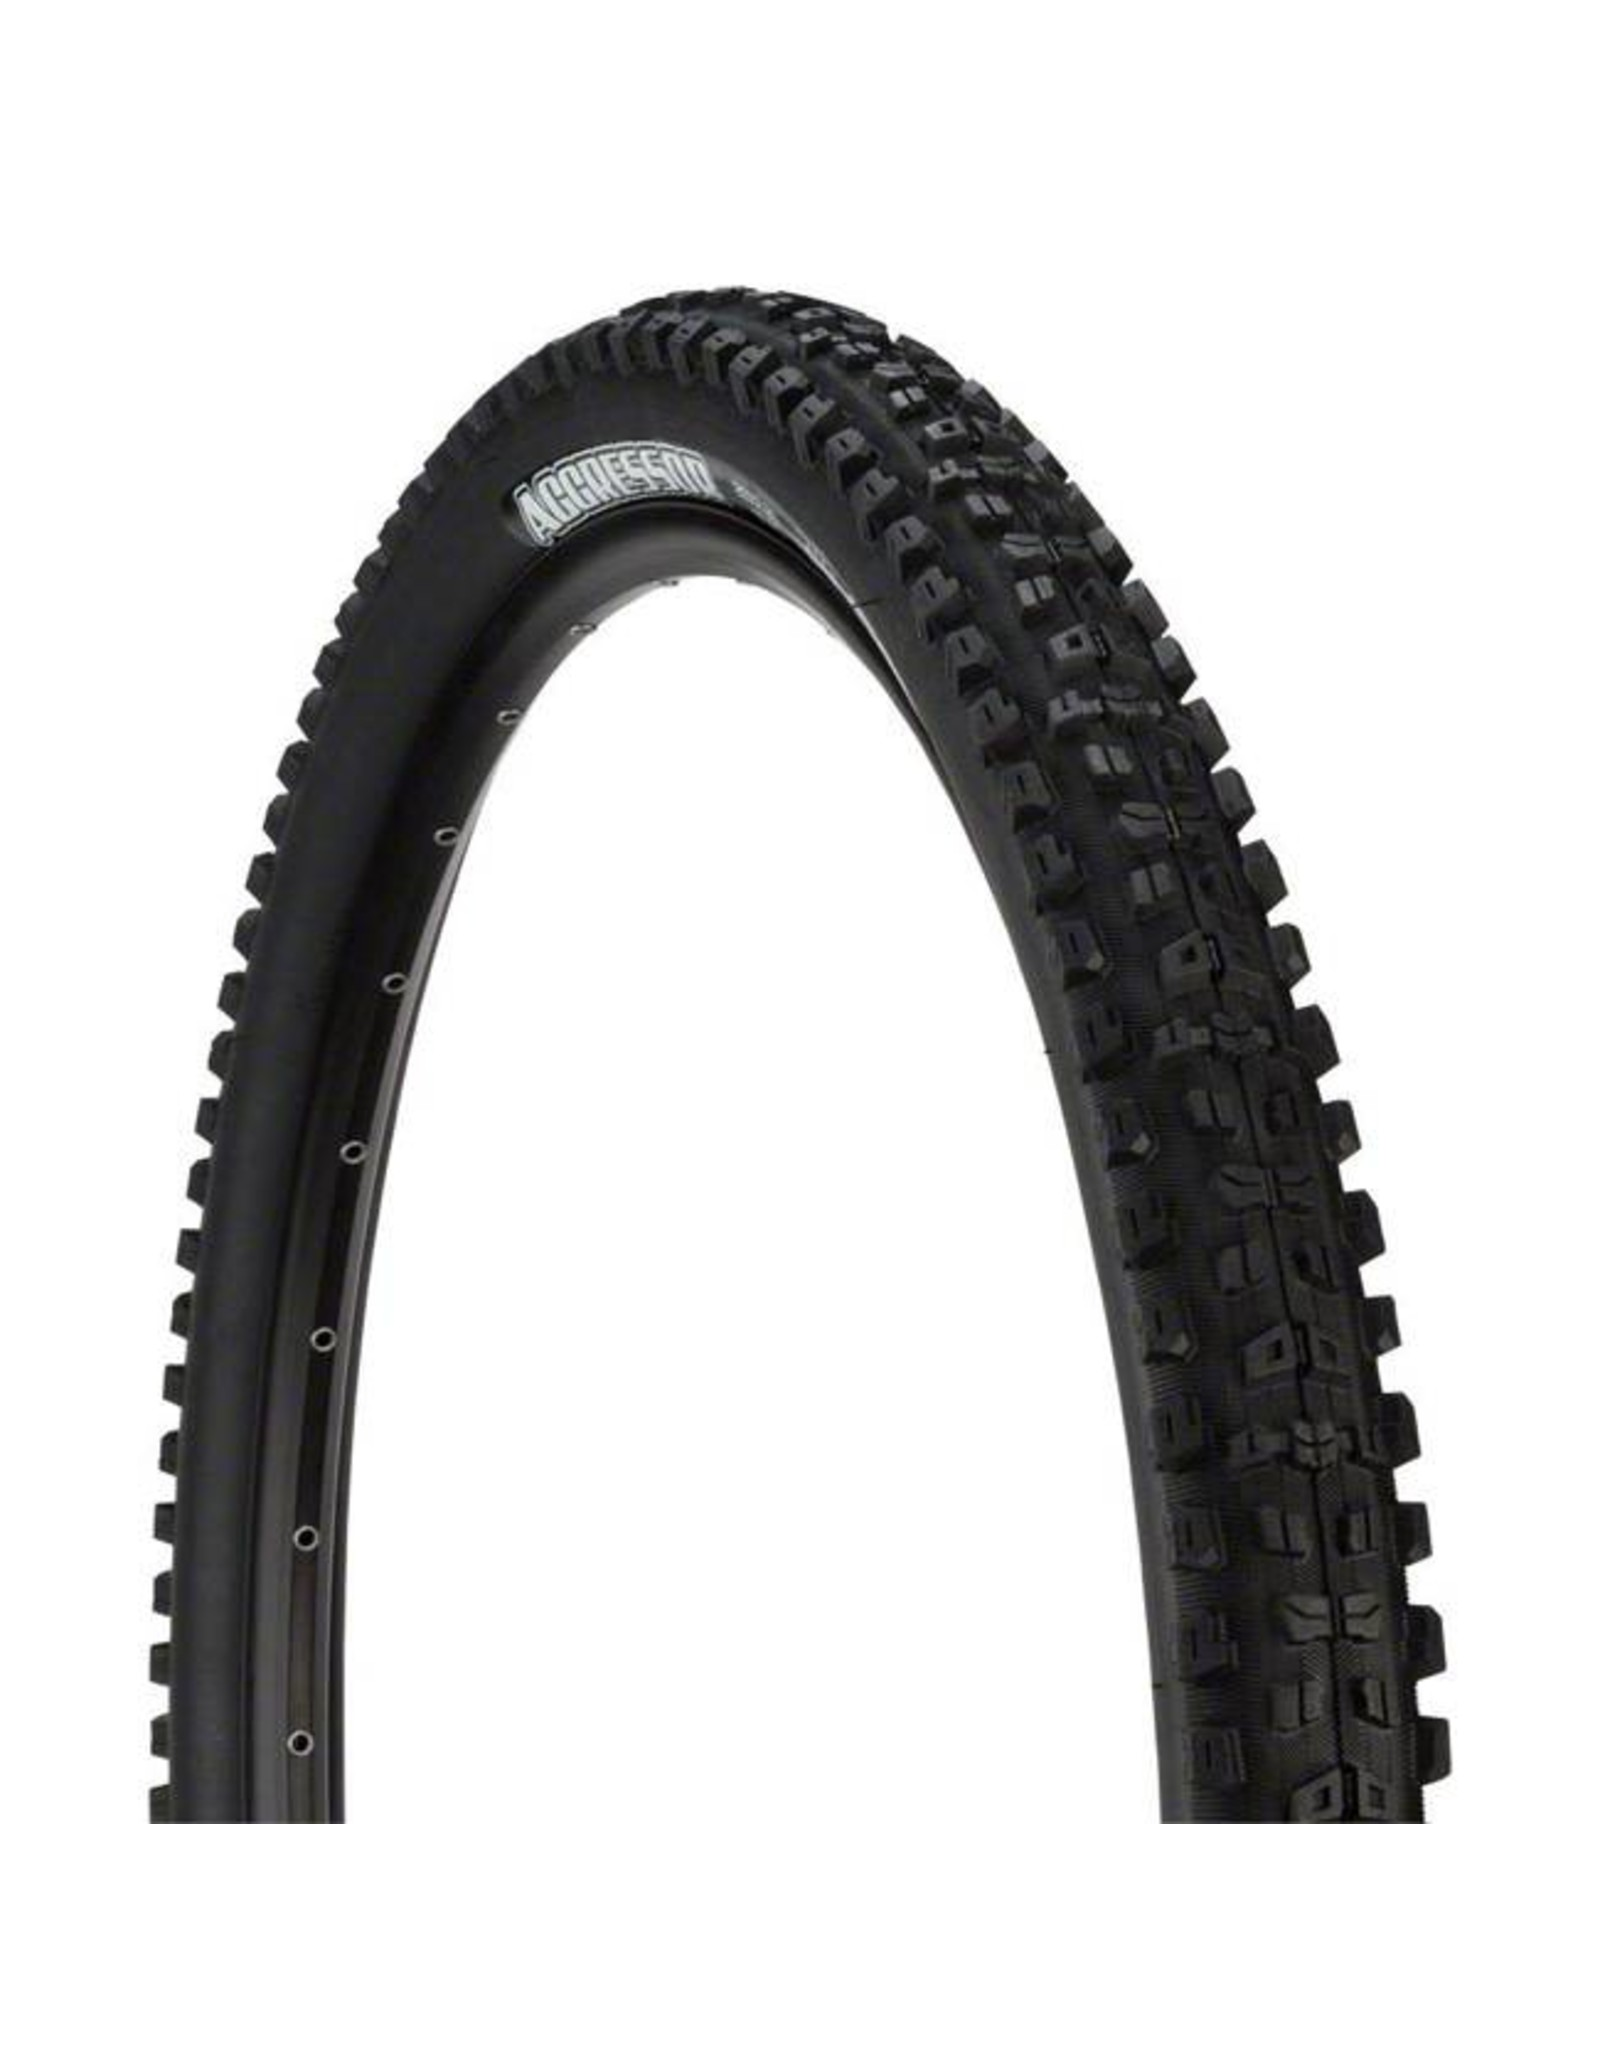 """Maxxis Maxxis Aggressor Tire: 27.5 x 2.50"""", Folding, 120tpi, Dual Compound, Double Down, Tubeless Ready, Wide Trail, Black"""